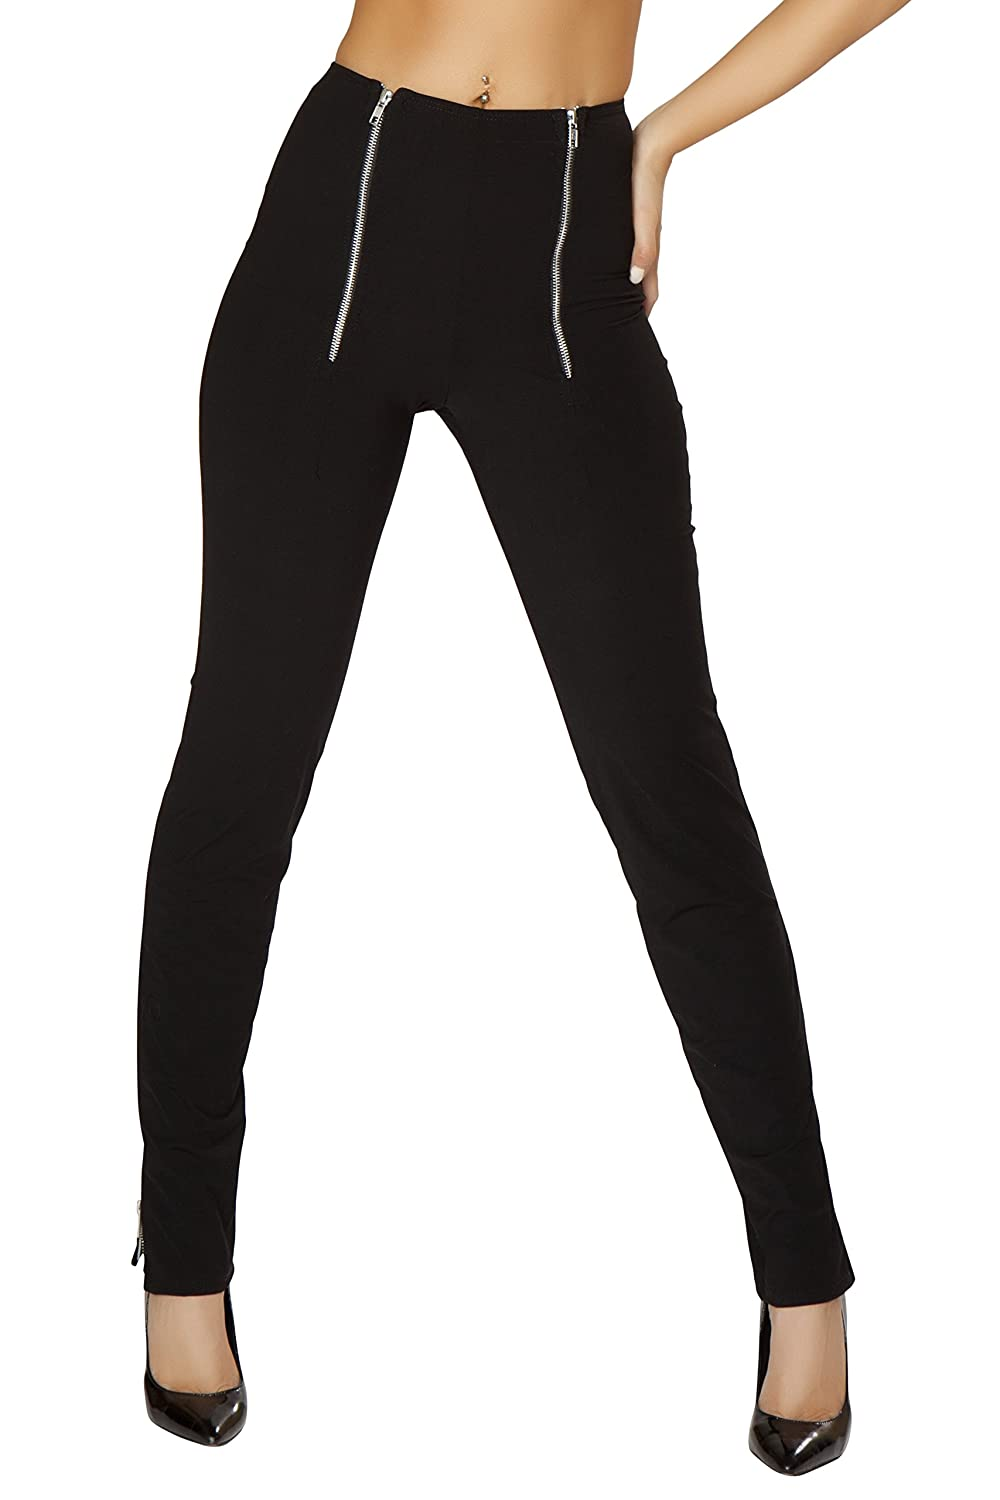 Roma Women's Pants with Dual Zip Front and Zip Up Cuffs 3180